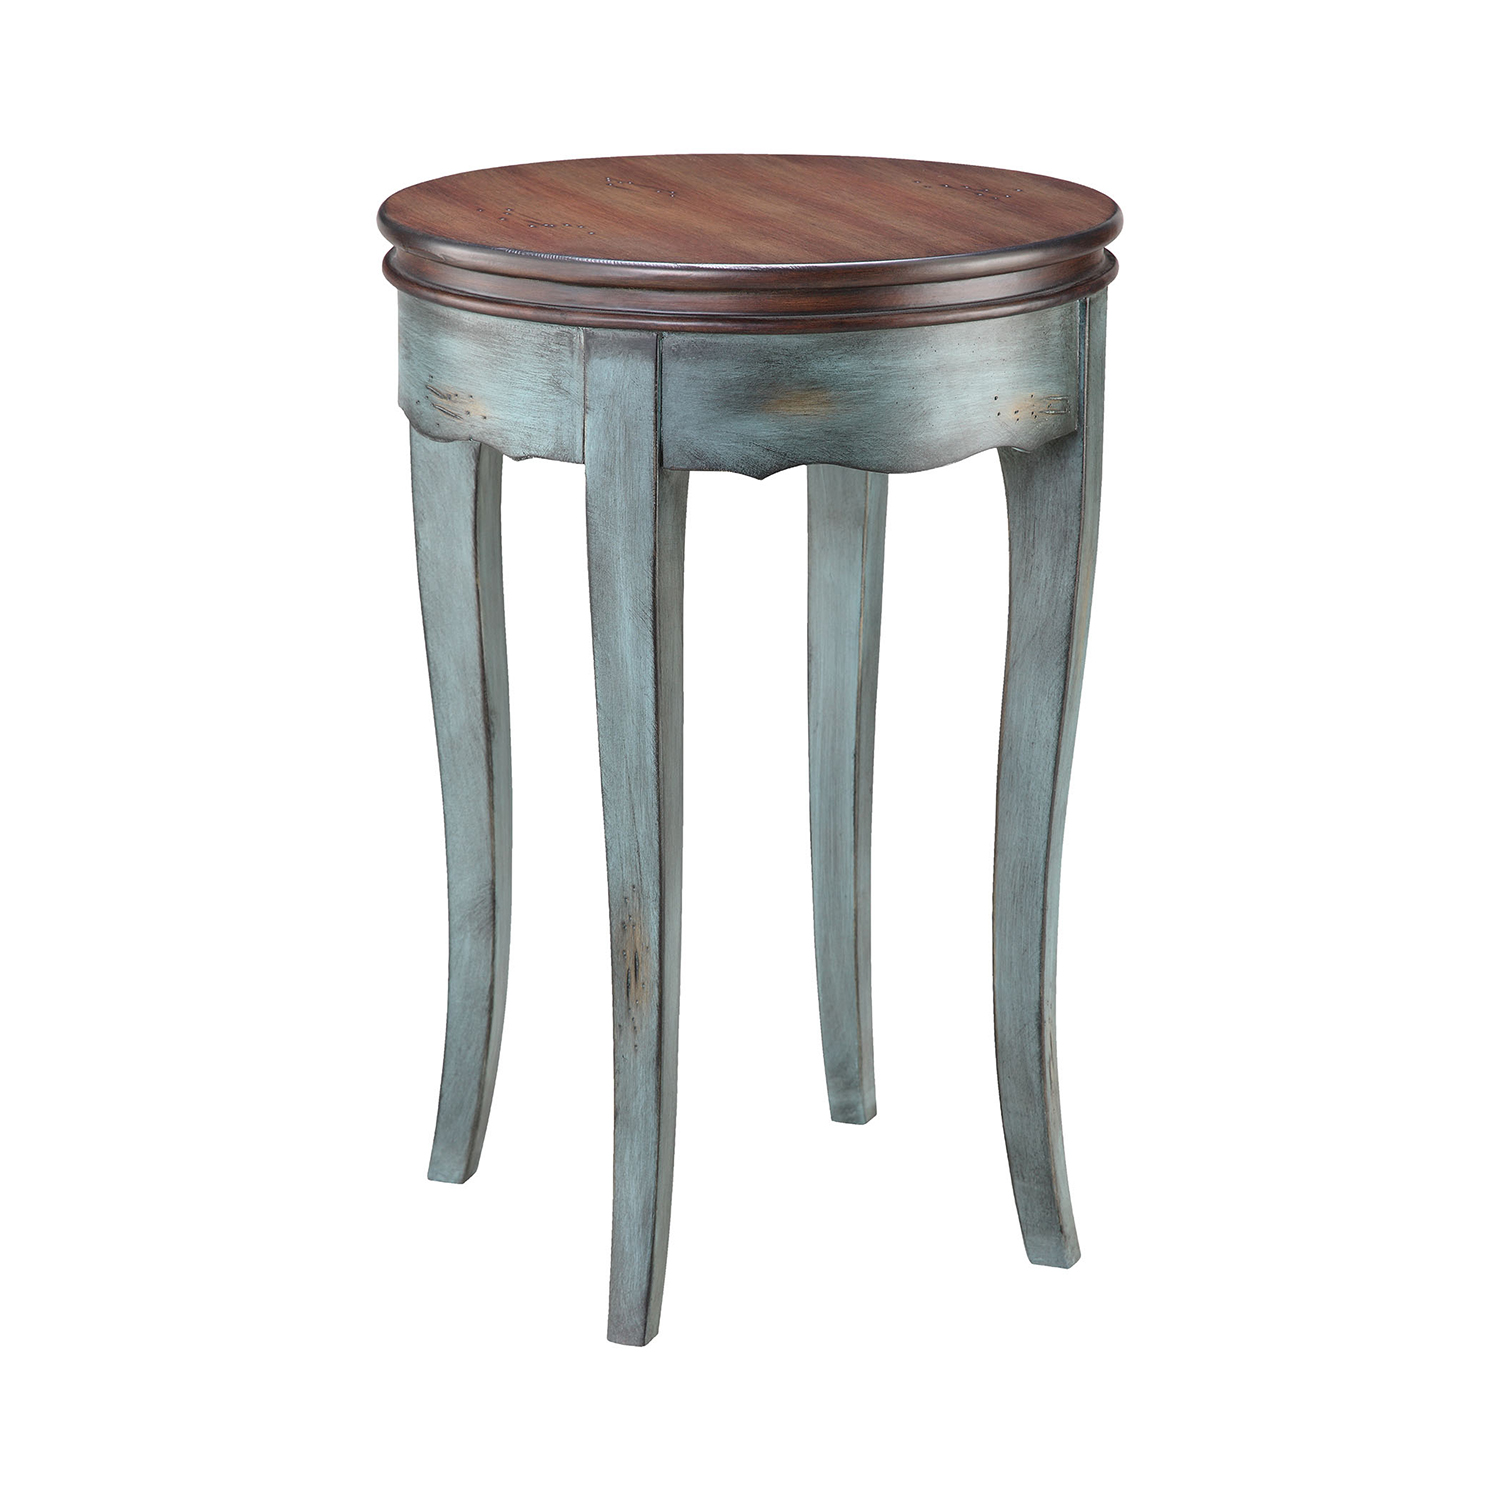 stein world hartford moonstone blue accent table bellacor hover zoom white lamp base ashley furniture end tables coffee rustic wood with storage piece nesting set distressed red